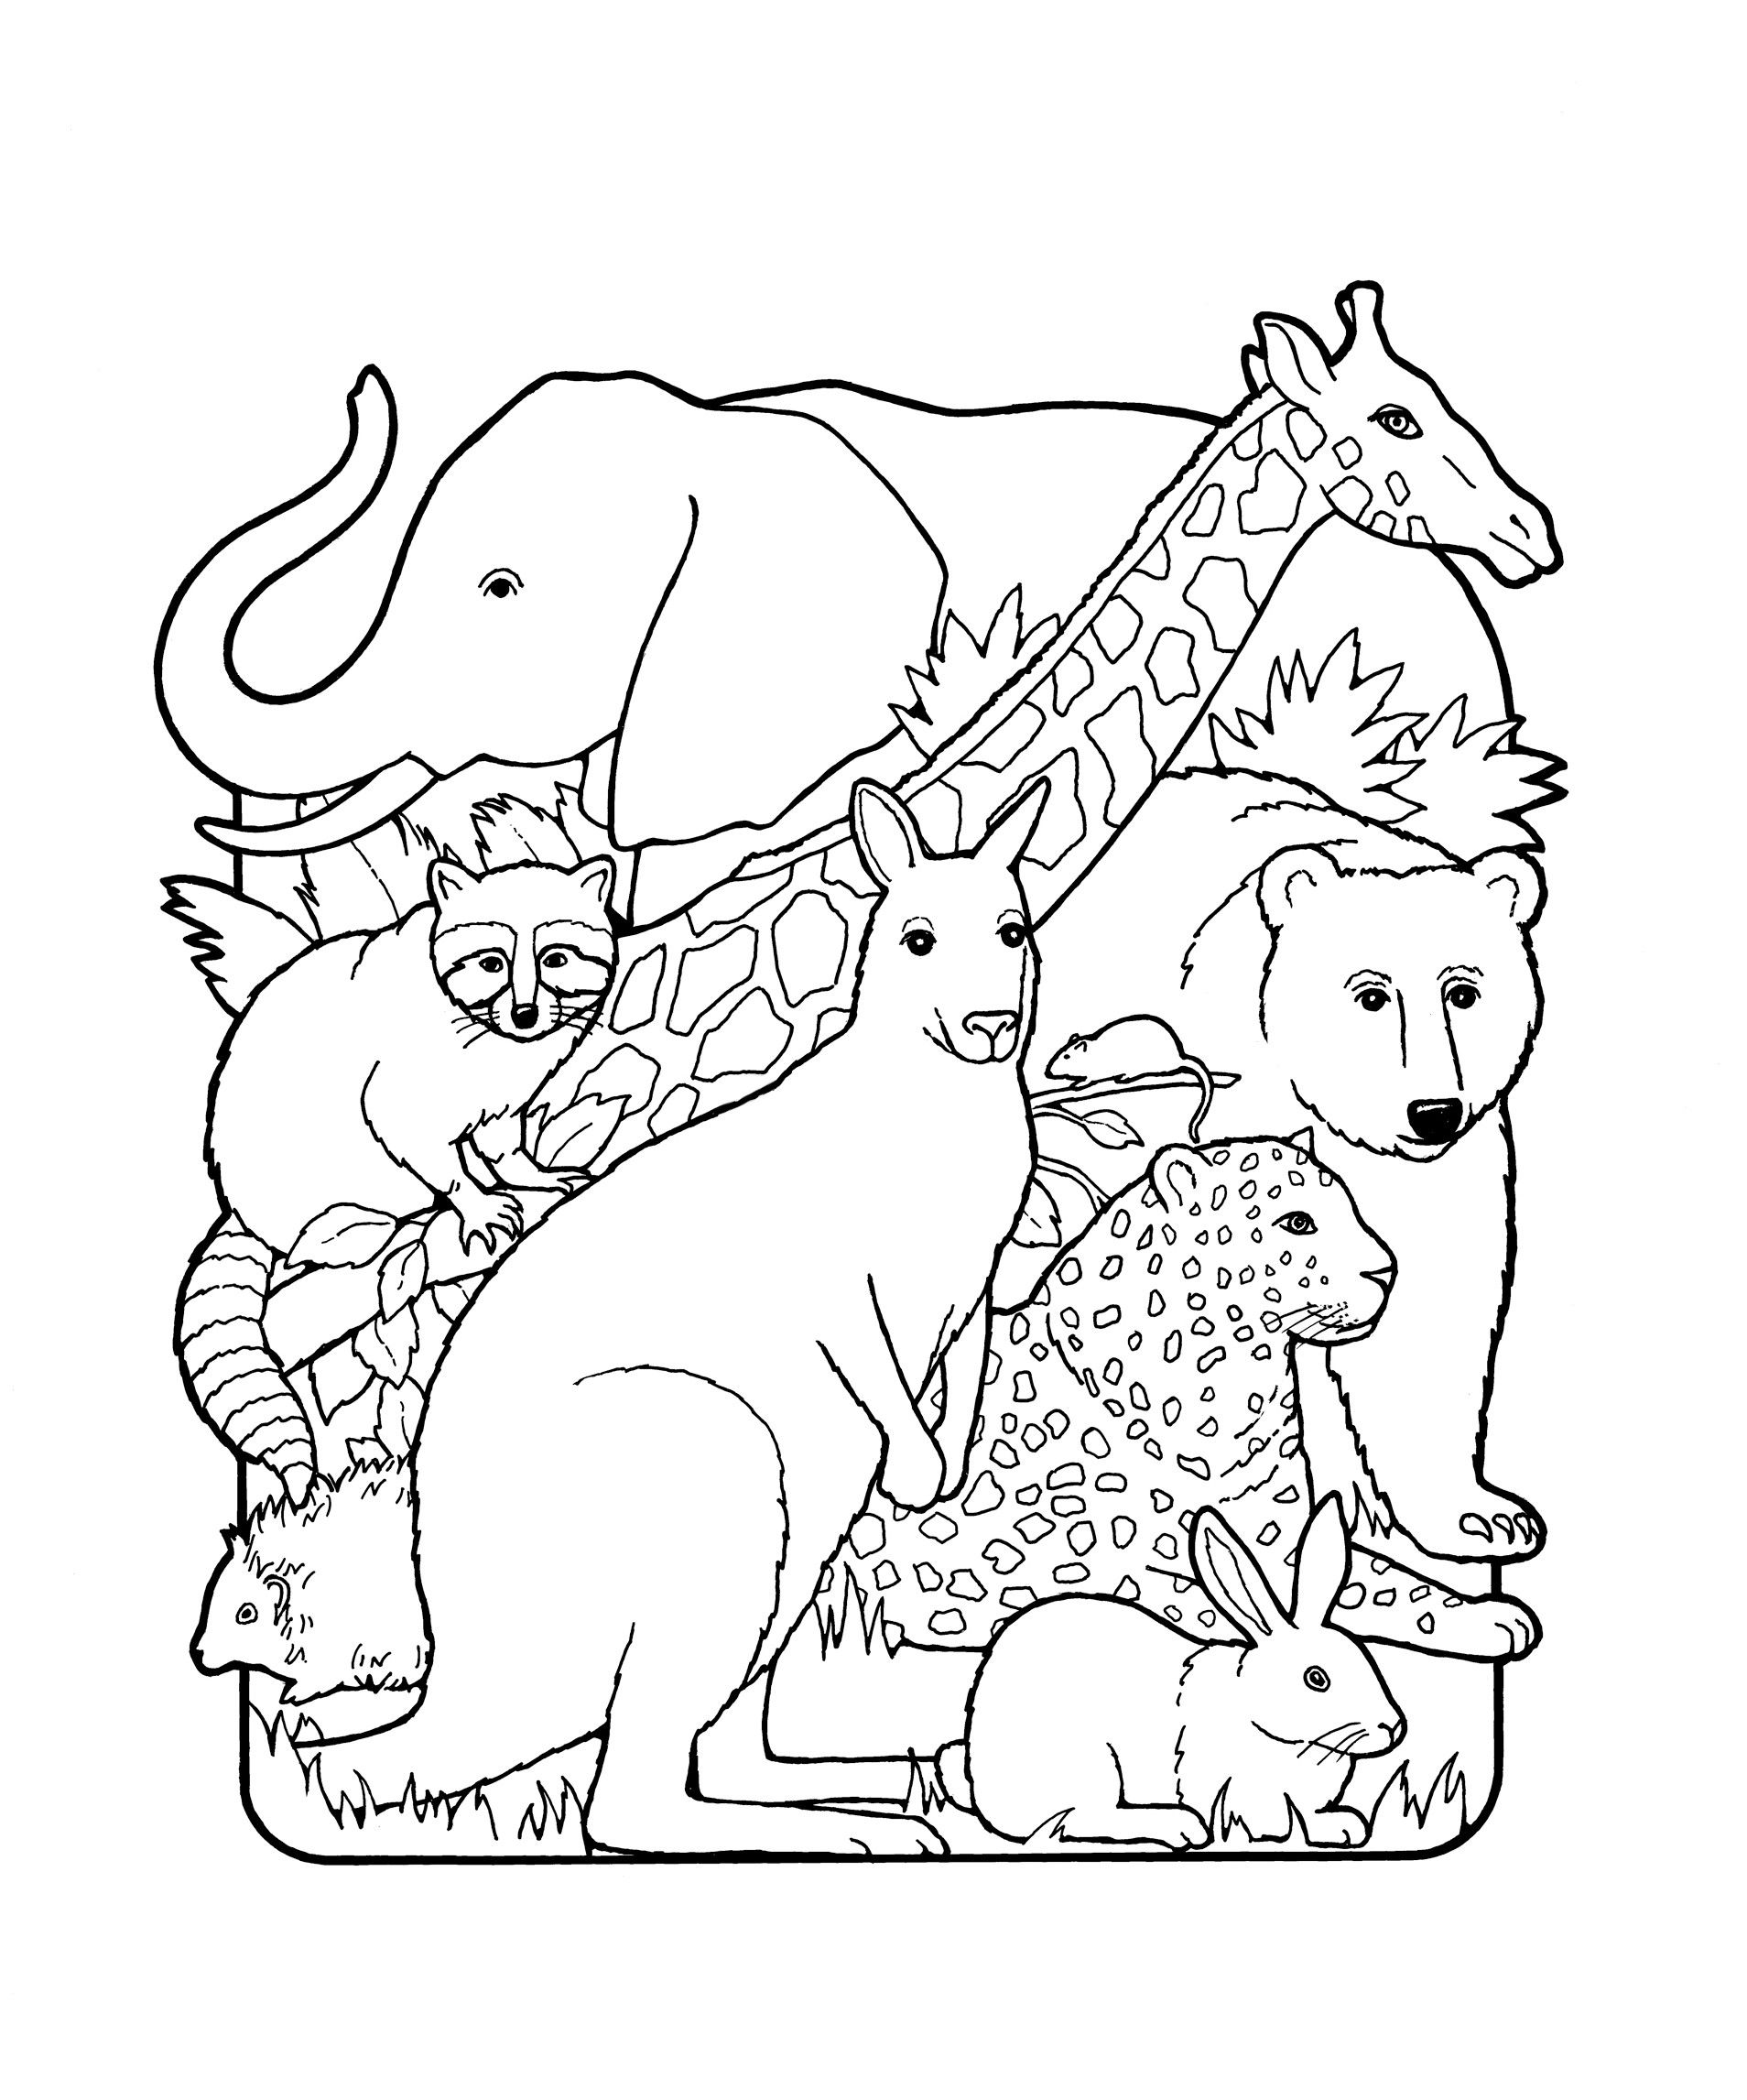 An illustration of various animals.